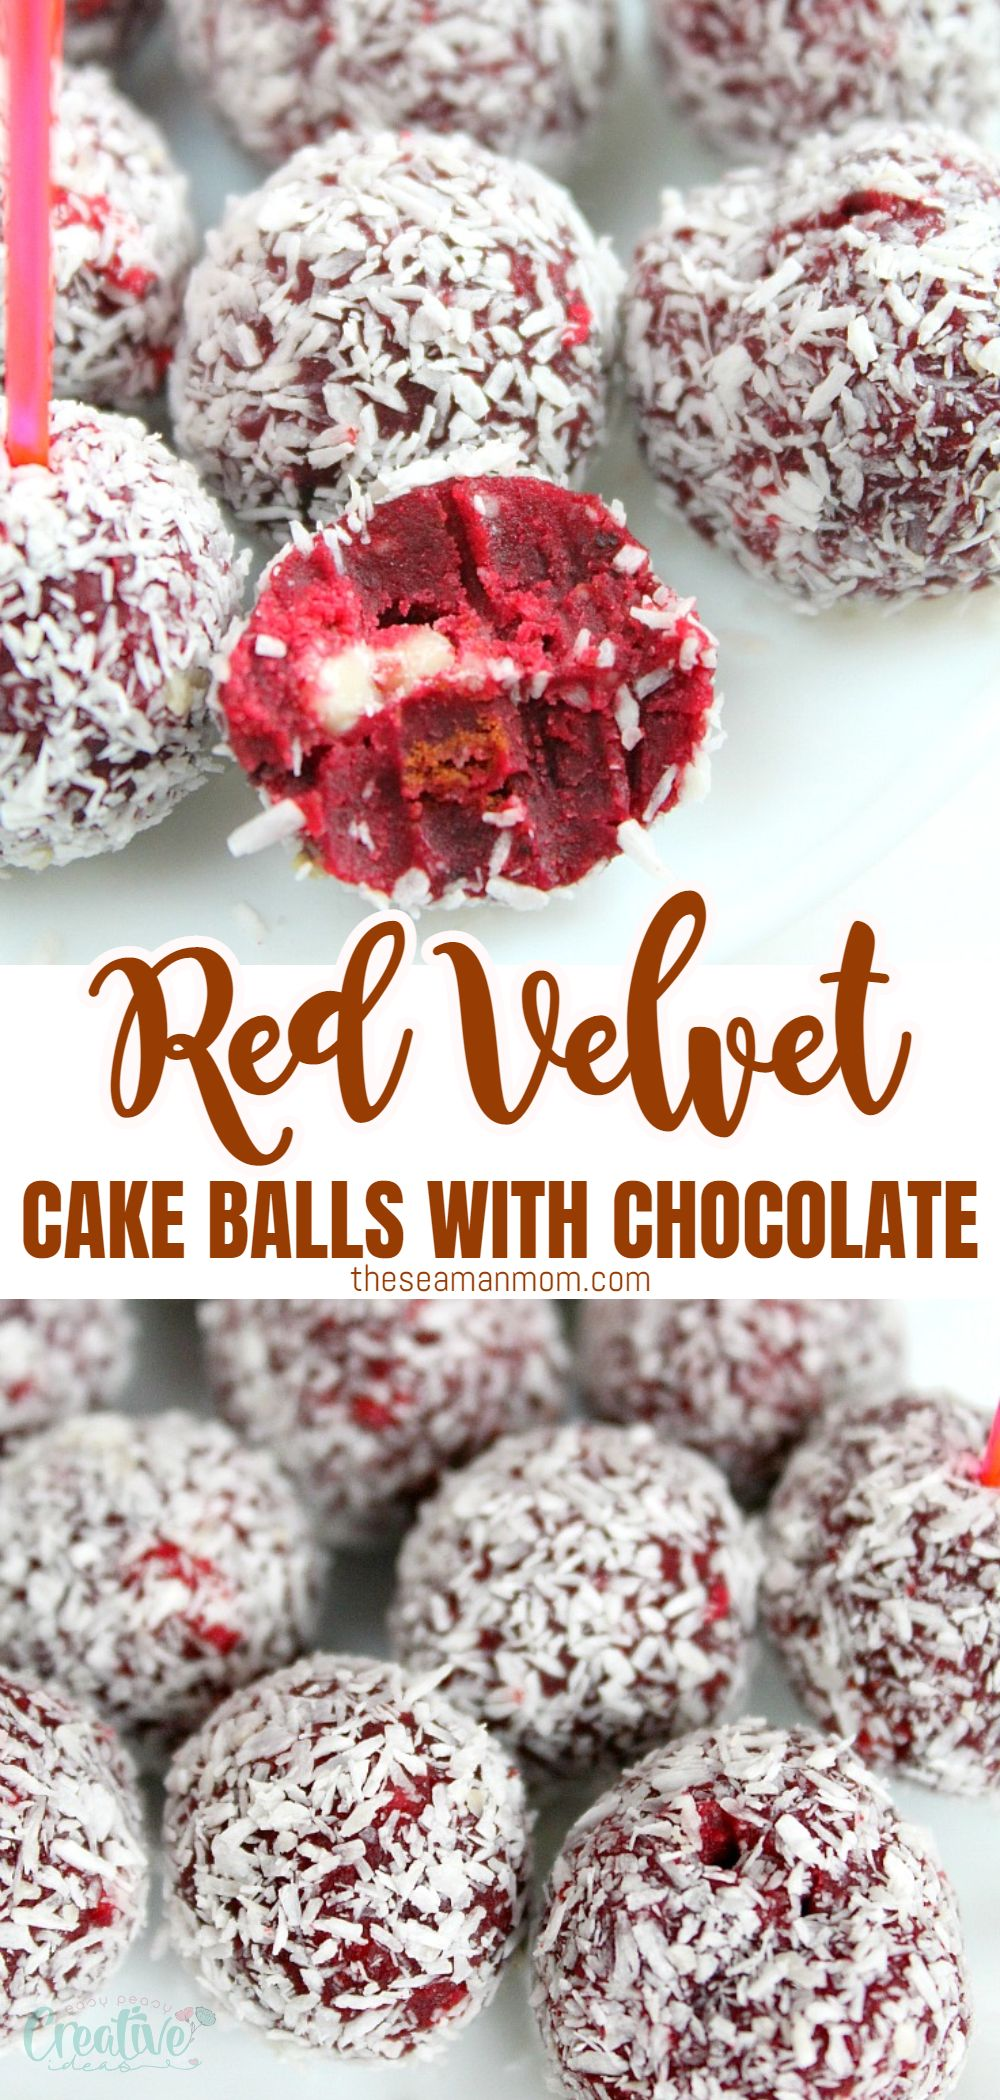 These moist red velvet cake balls with coconut and white chocolate bits are festive, sweet and make a wonderful indulgent treat or gift! This recipe is perfect not only for Valentines but any holiday! via @petroneagu